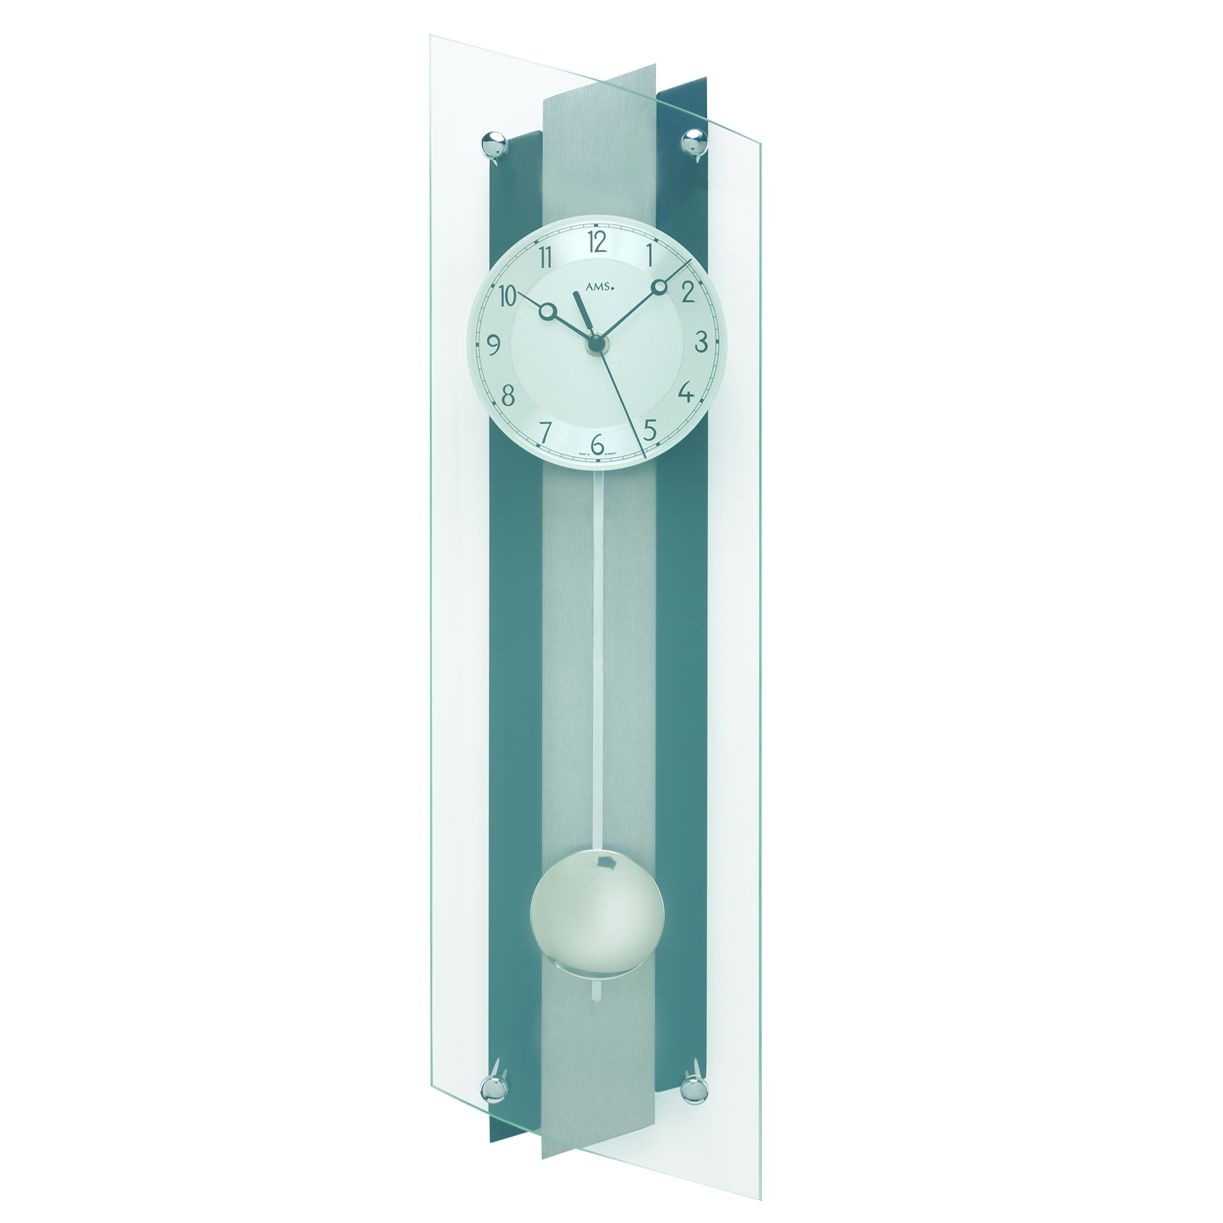 AMS 5262 wallclock with pendulem